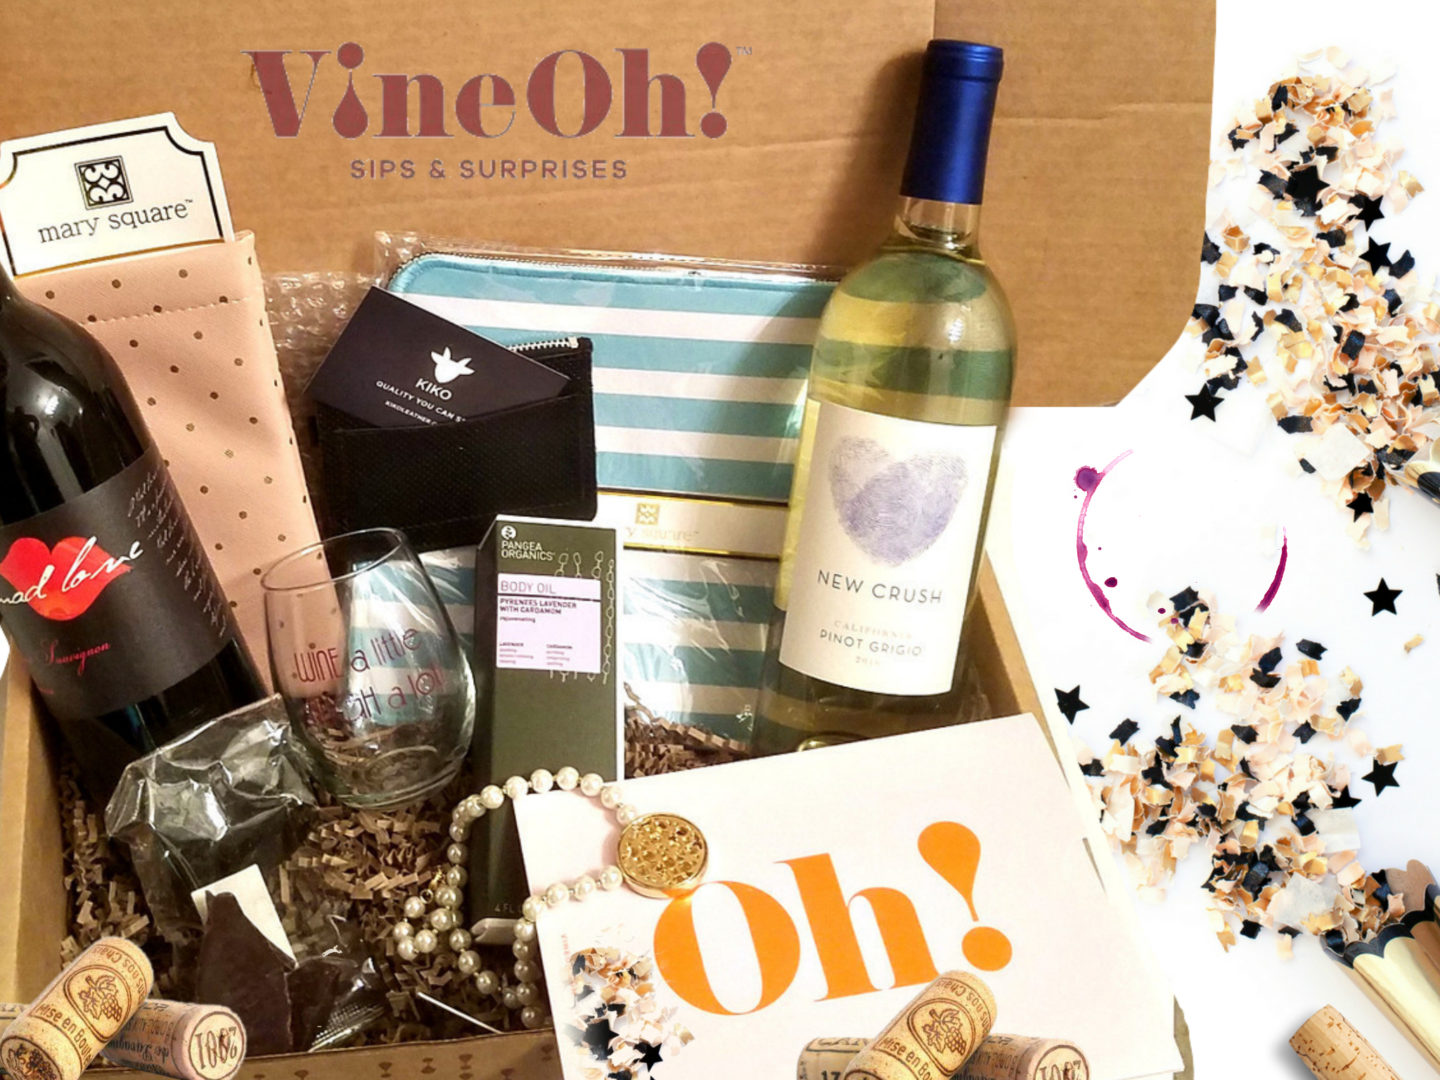 The Best Wine and Lifestyle Subscription Box For Women